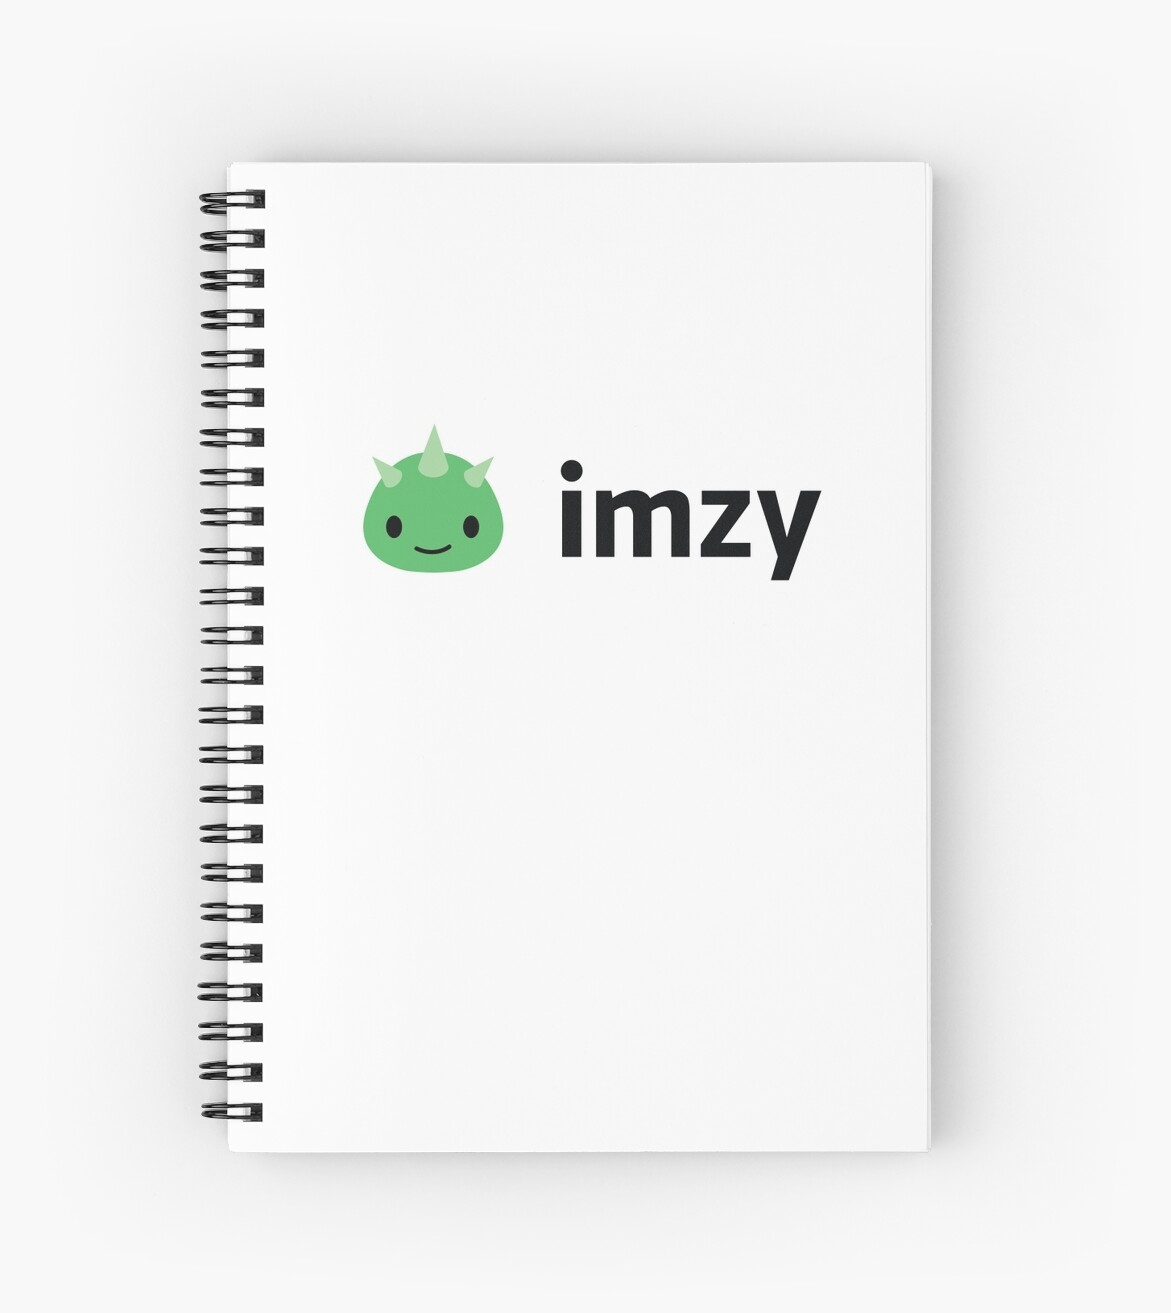 Imzy official logo by Imzy HQ